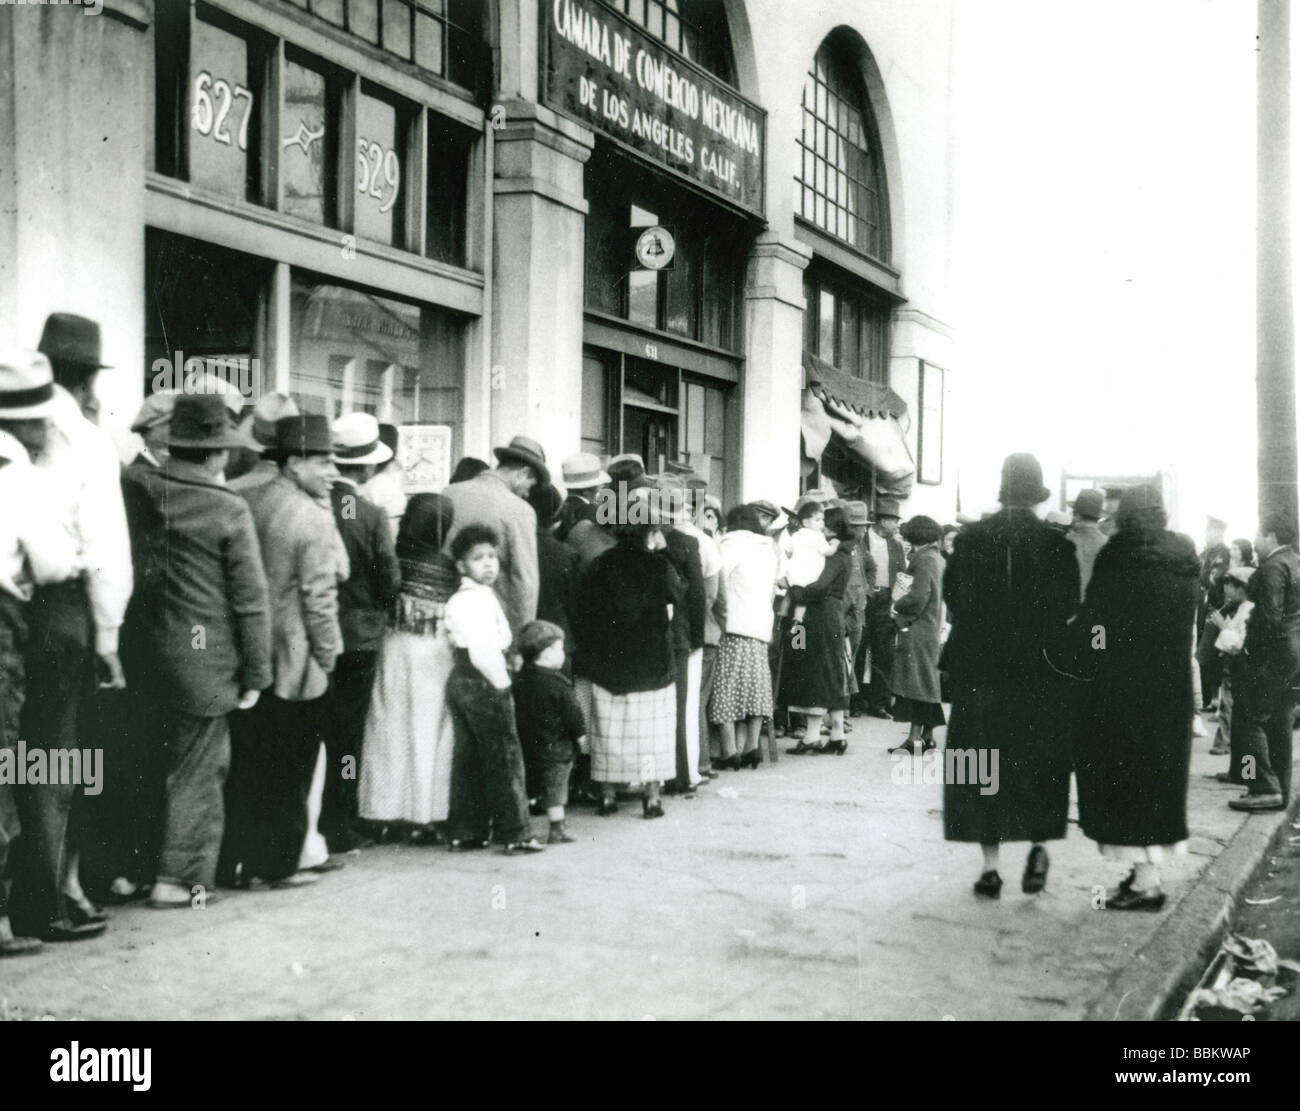 GREAT DEPRESSION -  queueing for bread in Los Angeles in the 1930s - Stock Image